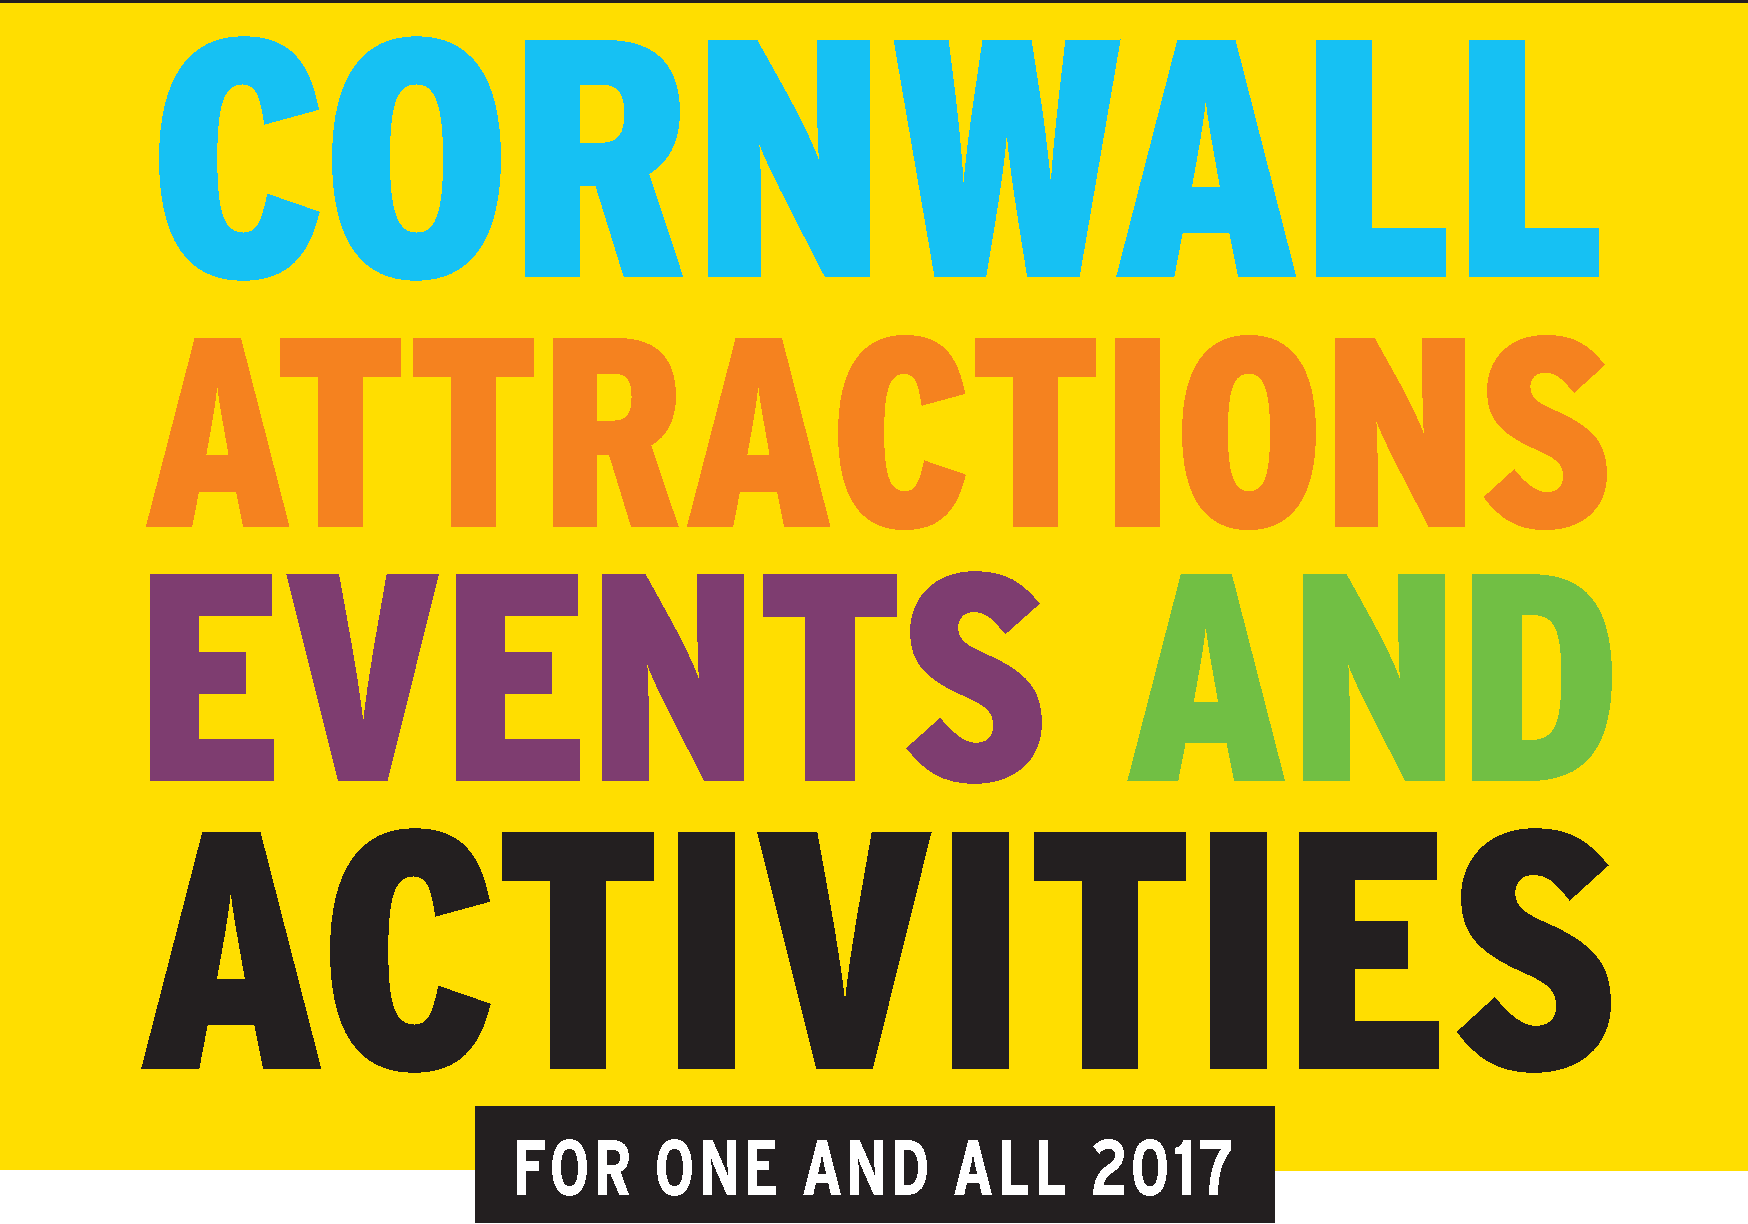 Attractions Events Activities in Cornwall